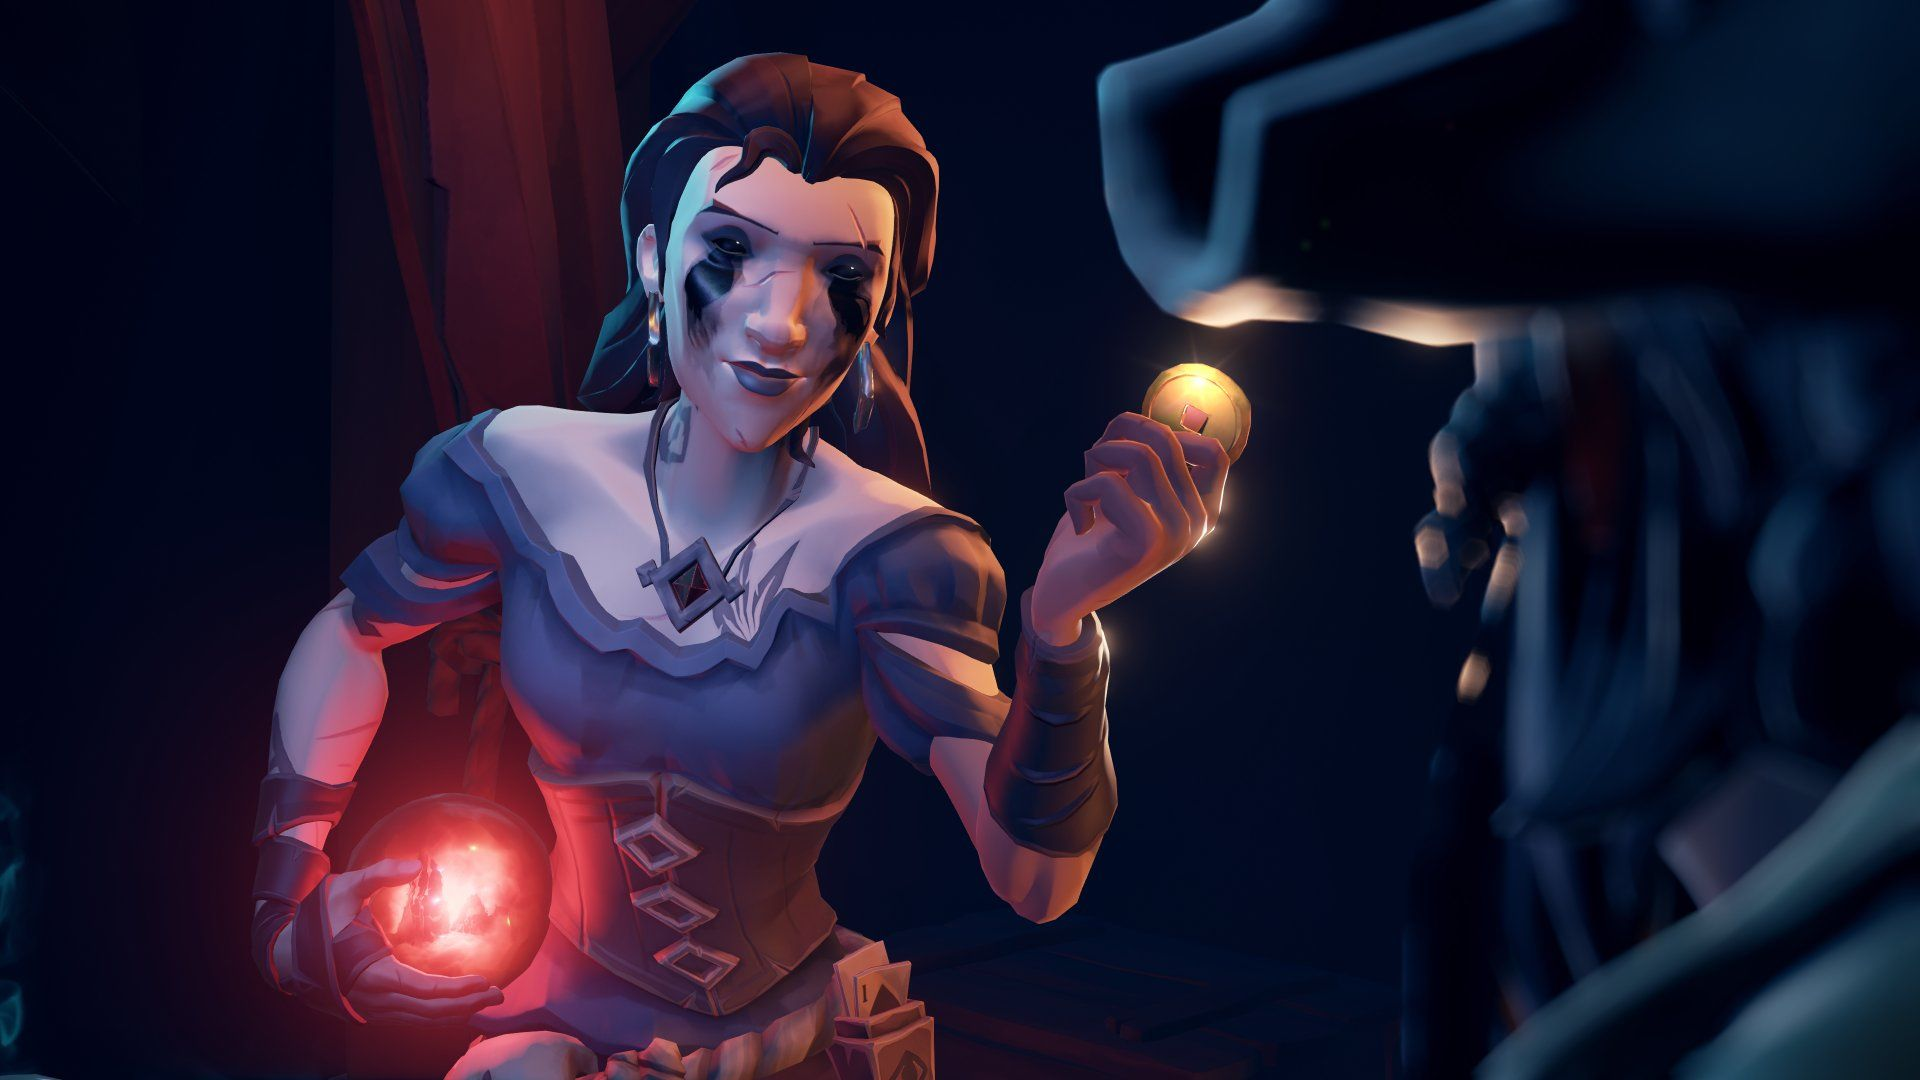 Sea of Thieves' is making up for lost time with awesome